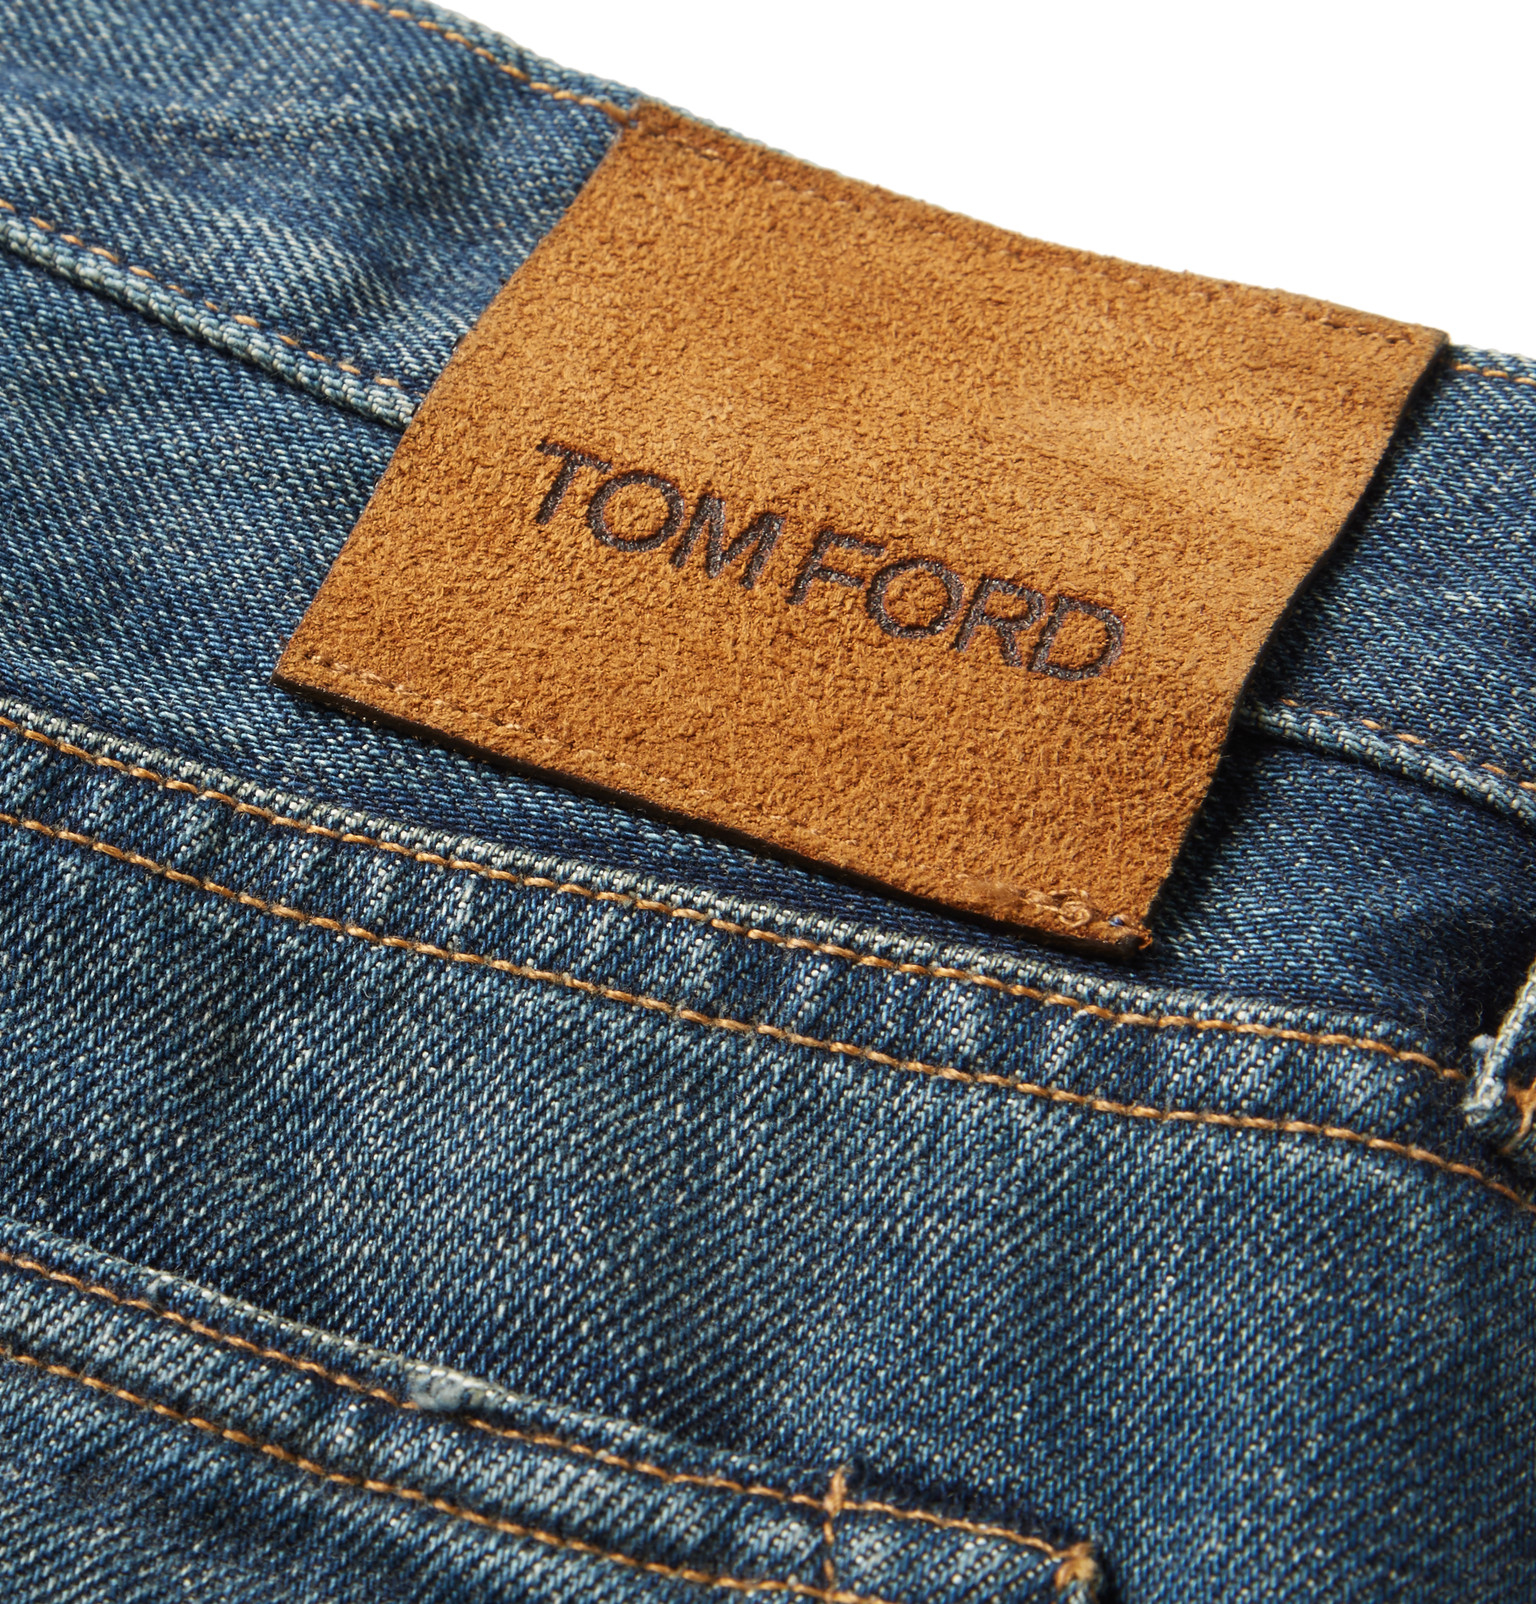 28492aeb08f8 Tom Ford Designer Jeans Related Keywords   Suggestions - Tom Ford ...